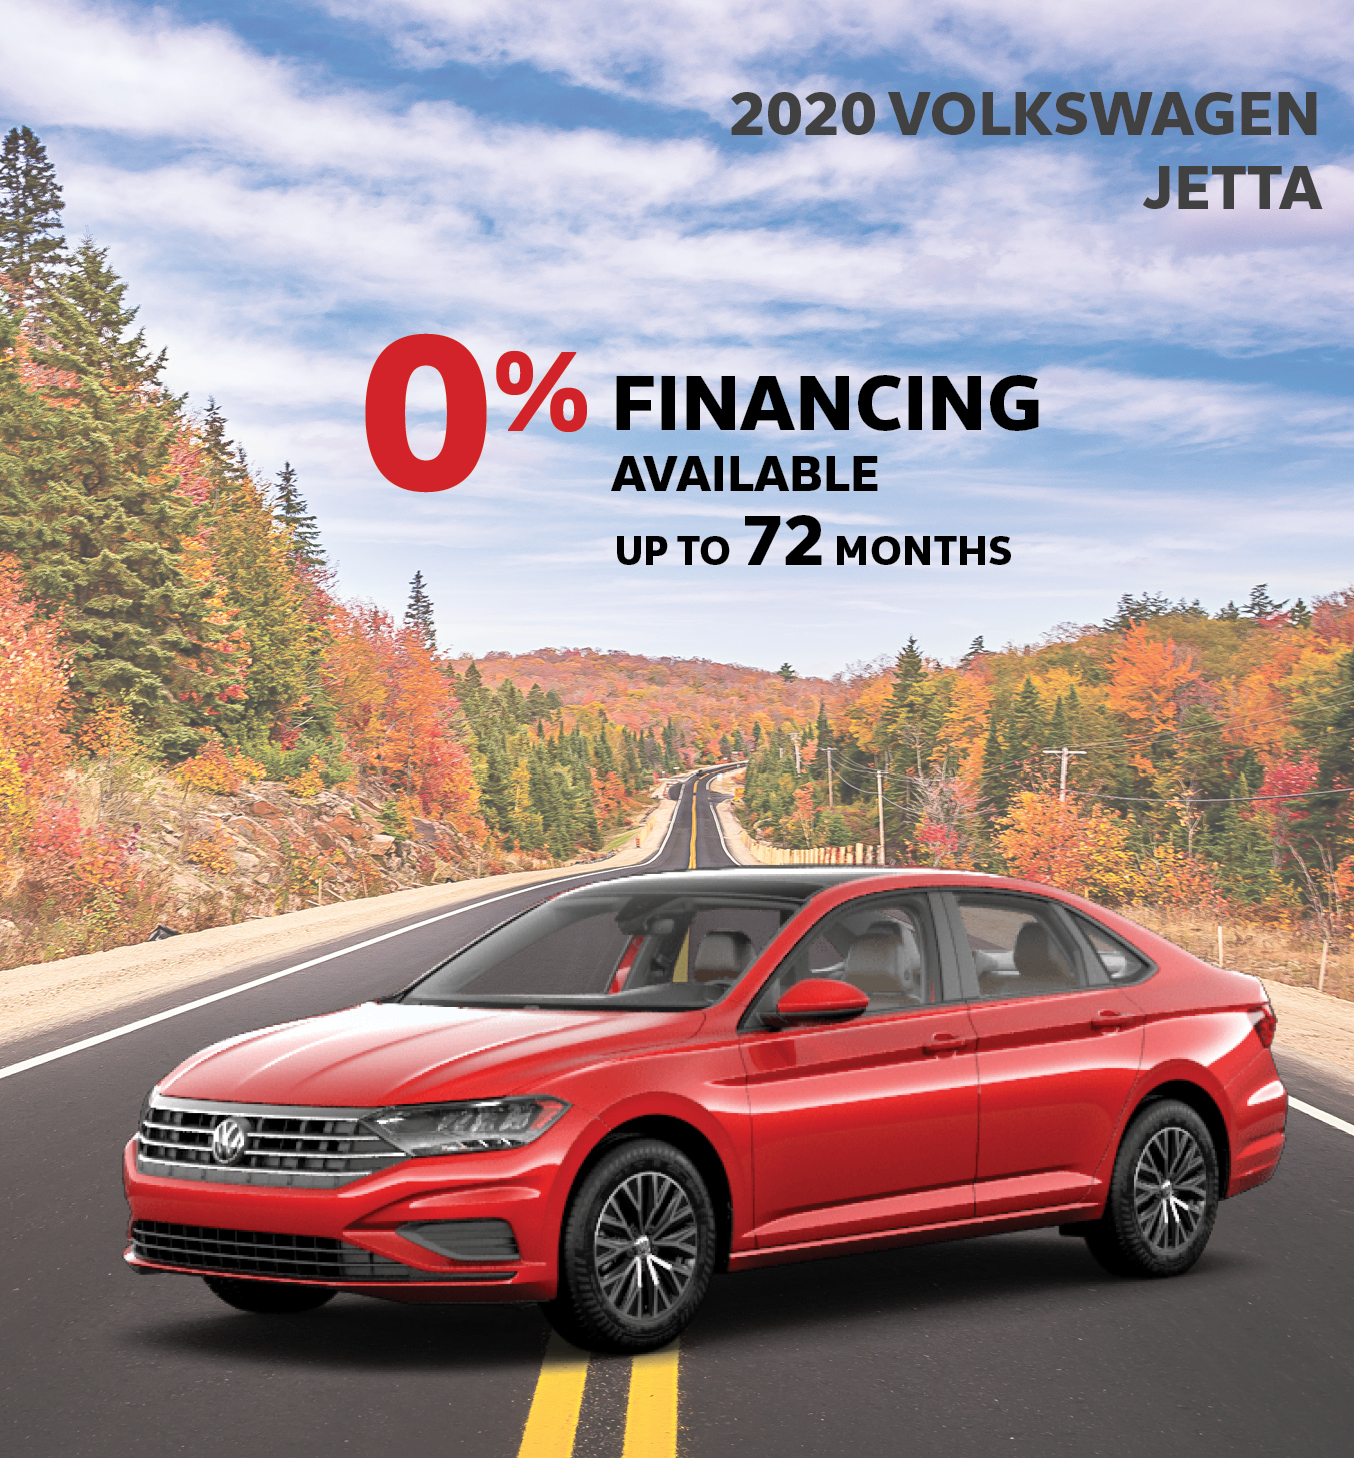 0% Financing Available For 72 Months Jetta